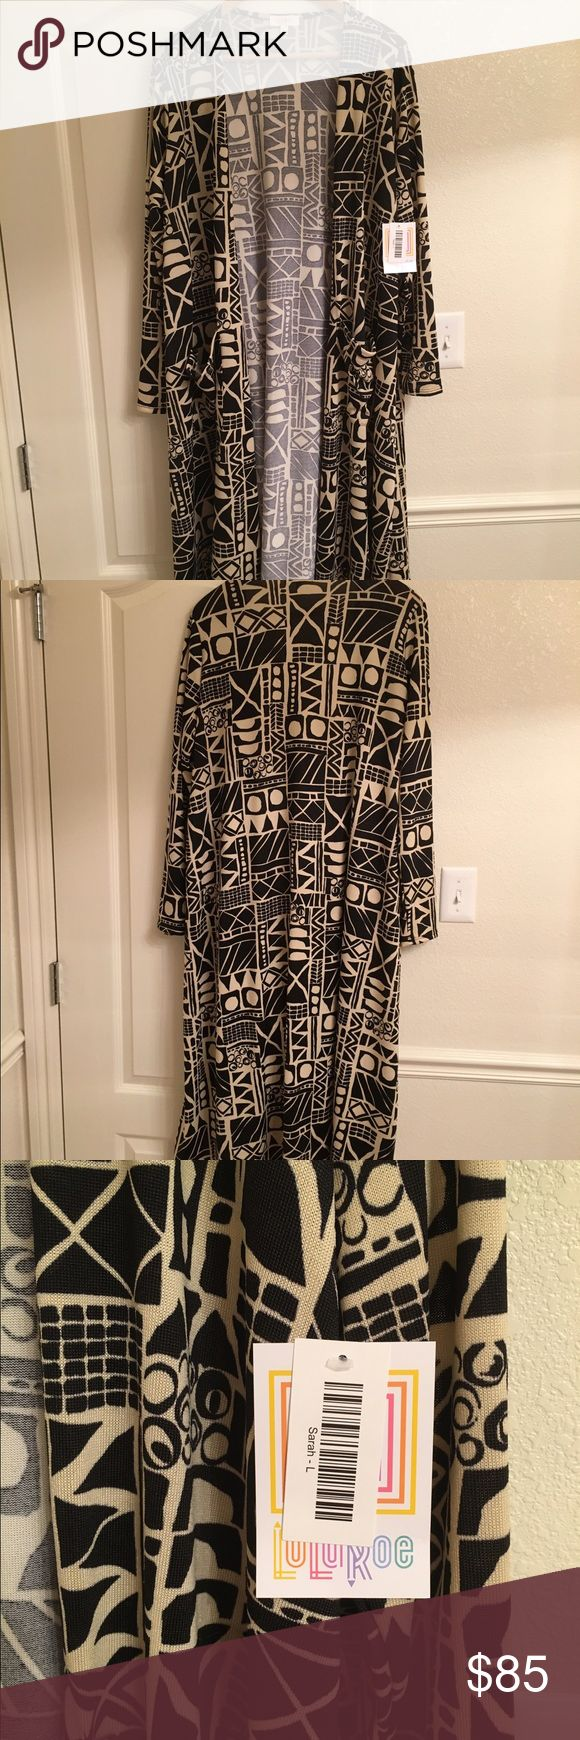 Lularoe Long Sarah Cardigan Sweater NWT Large Lularoe Sarah Cardigan Sweater Duster Long Black and Cream designed. New with Tags. Size Large. See Pics for details. No Trades. LuLaRoe Sweaters Cardigans